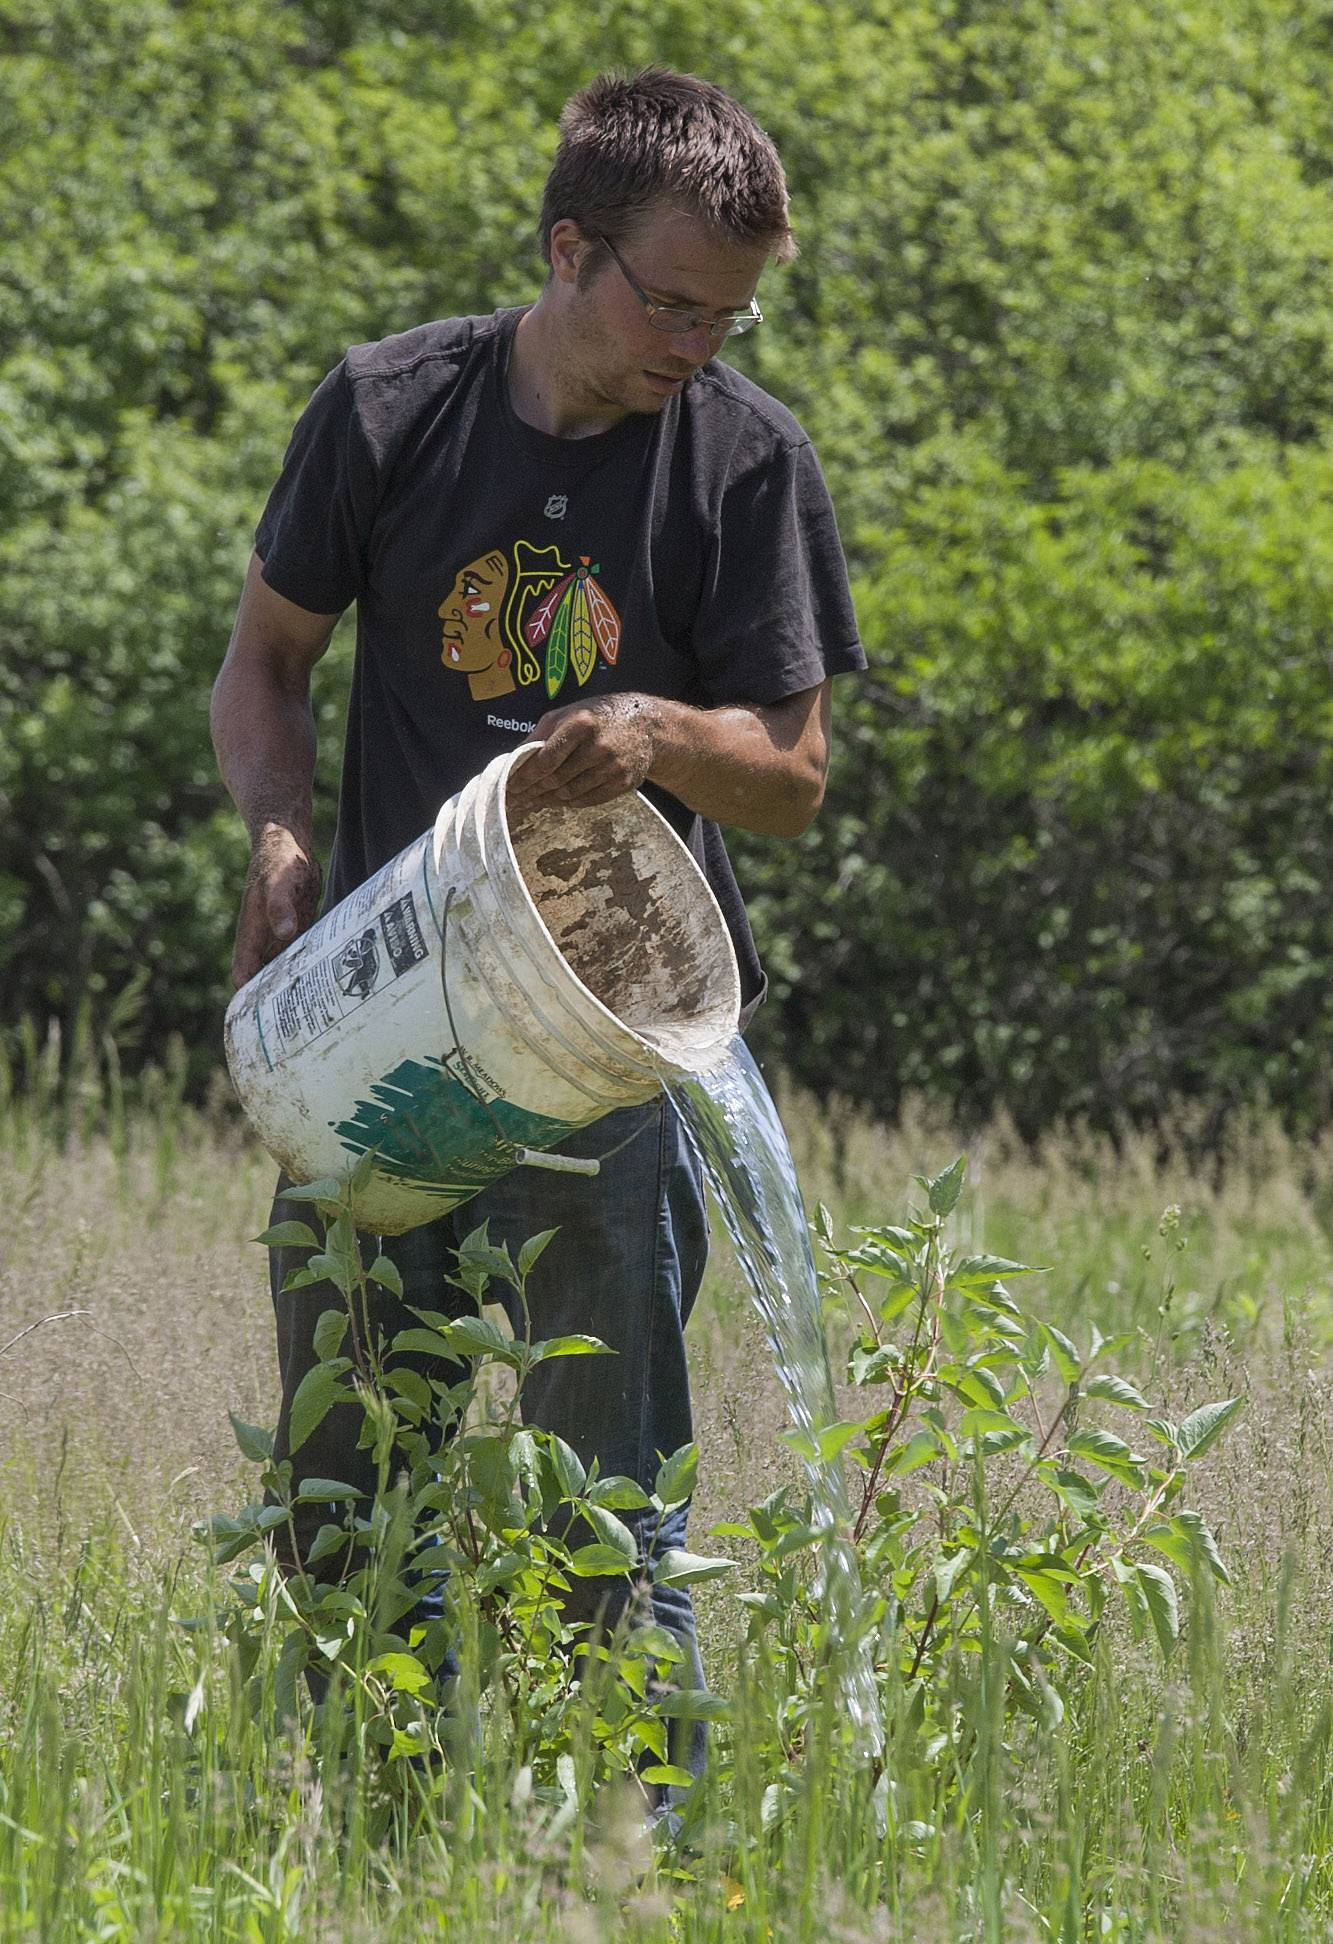 Dan Dennett was one of 23 volunteers who planted 160 trees and shrubs on a portion of Libertyville Township Open Space.